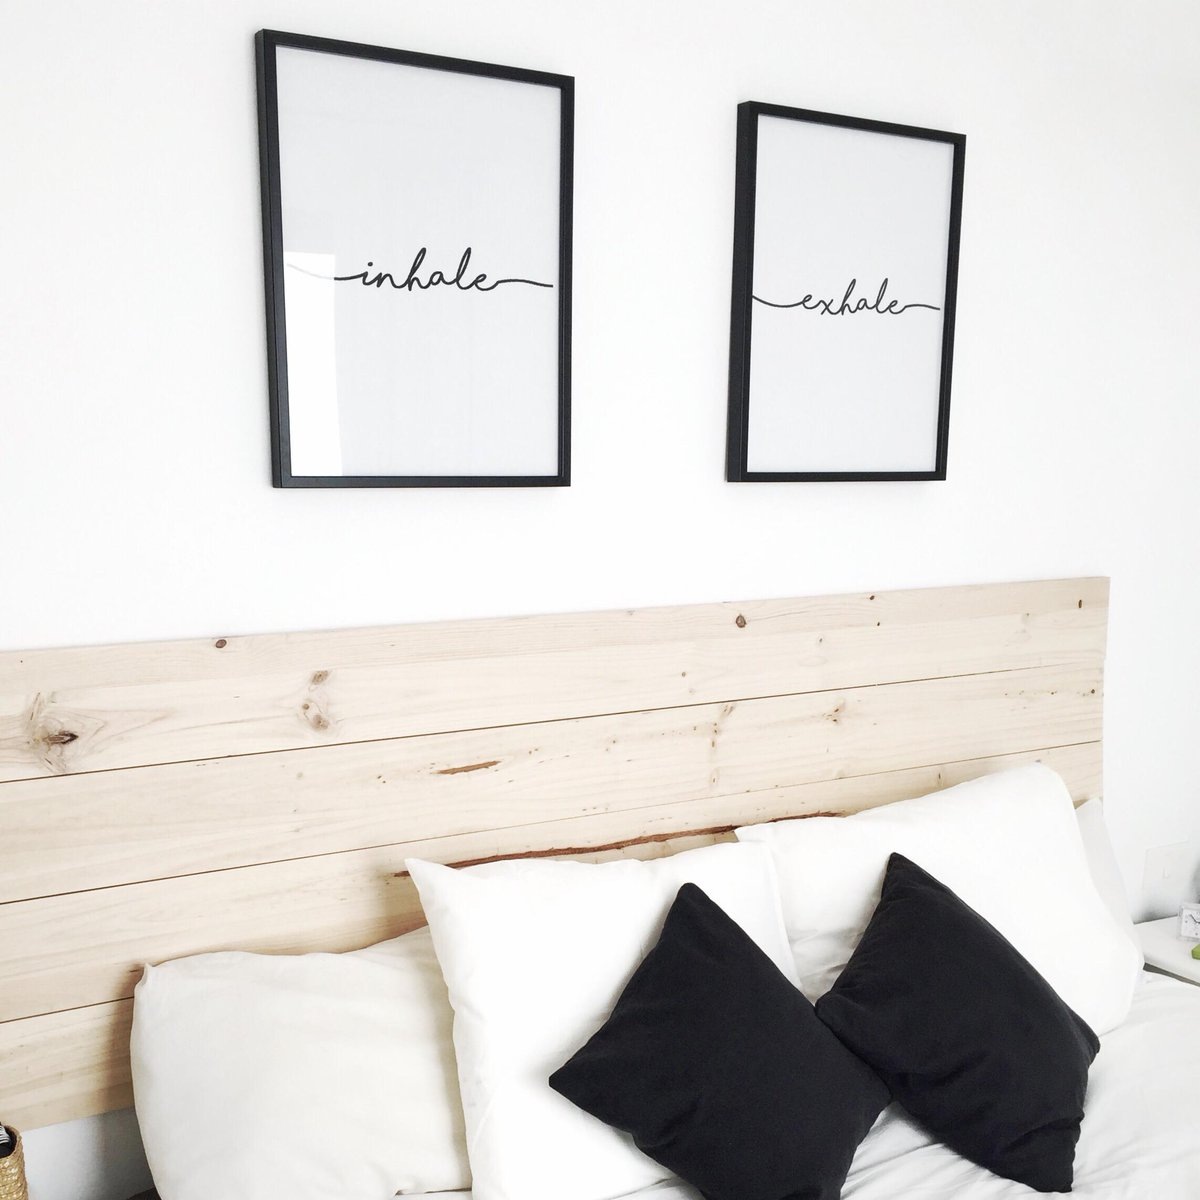 Picture of: Mattress Firm On Twitter Reduce Reuse Recycle Make Your Old Headboard New Again With These Easy Diy Projects Https T Co Sz3tg7ay7l